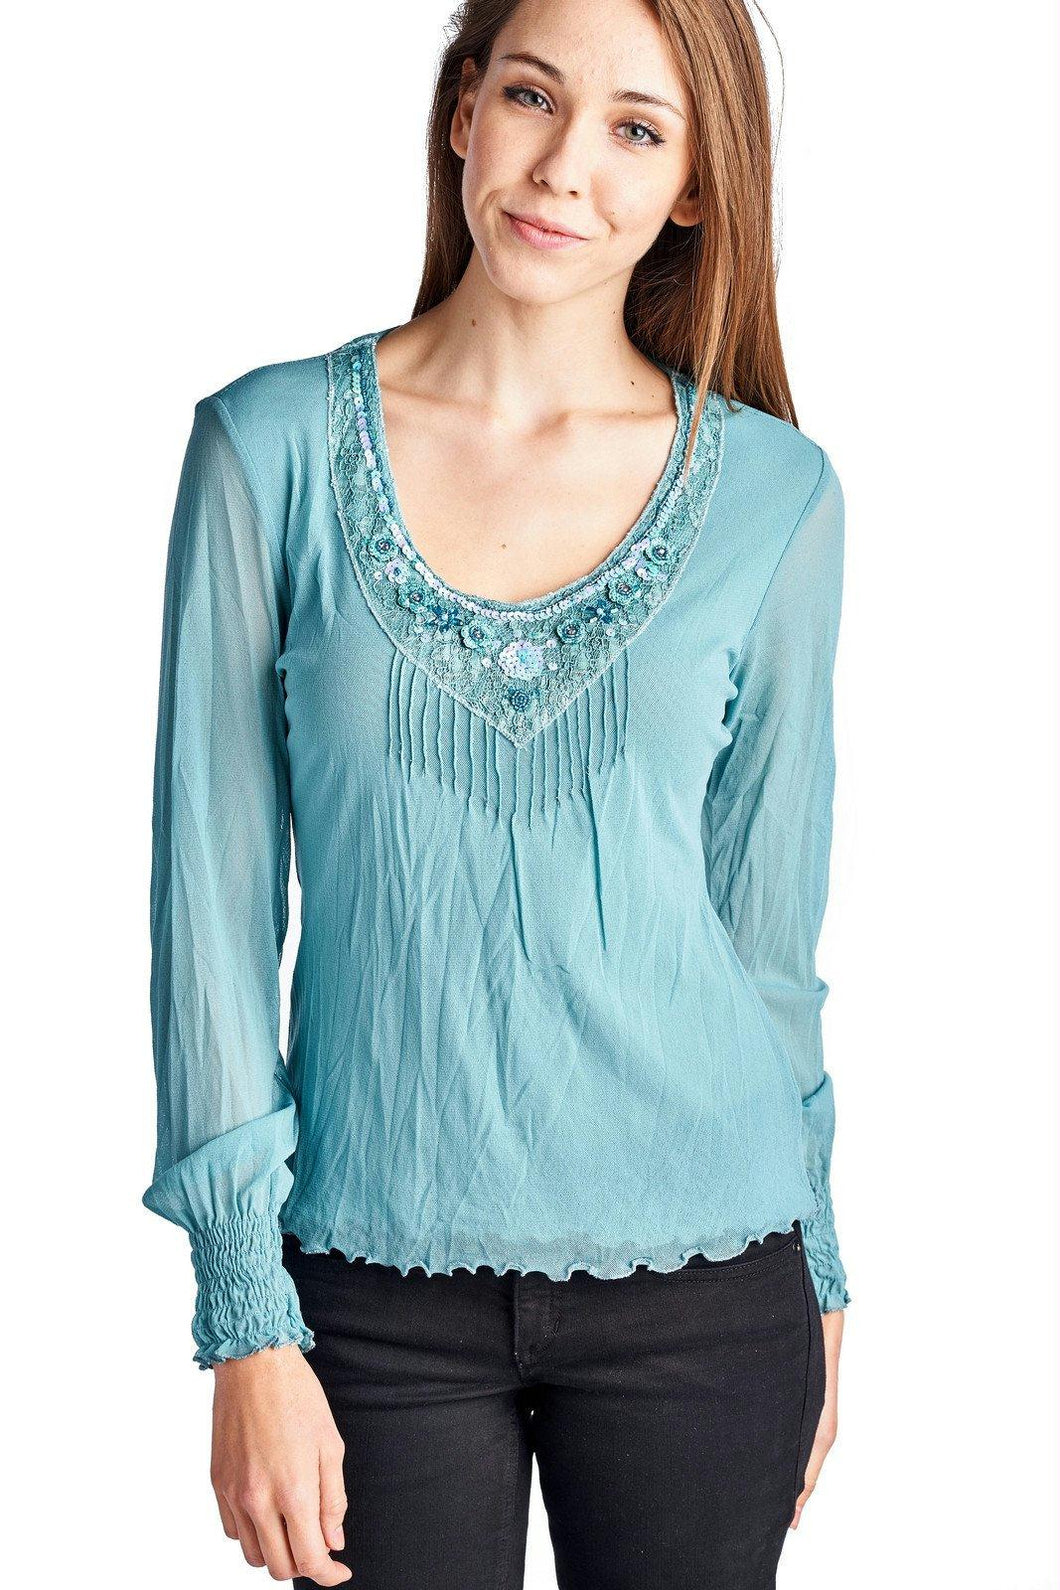 Women's Long Sleeve Mesh Top